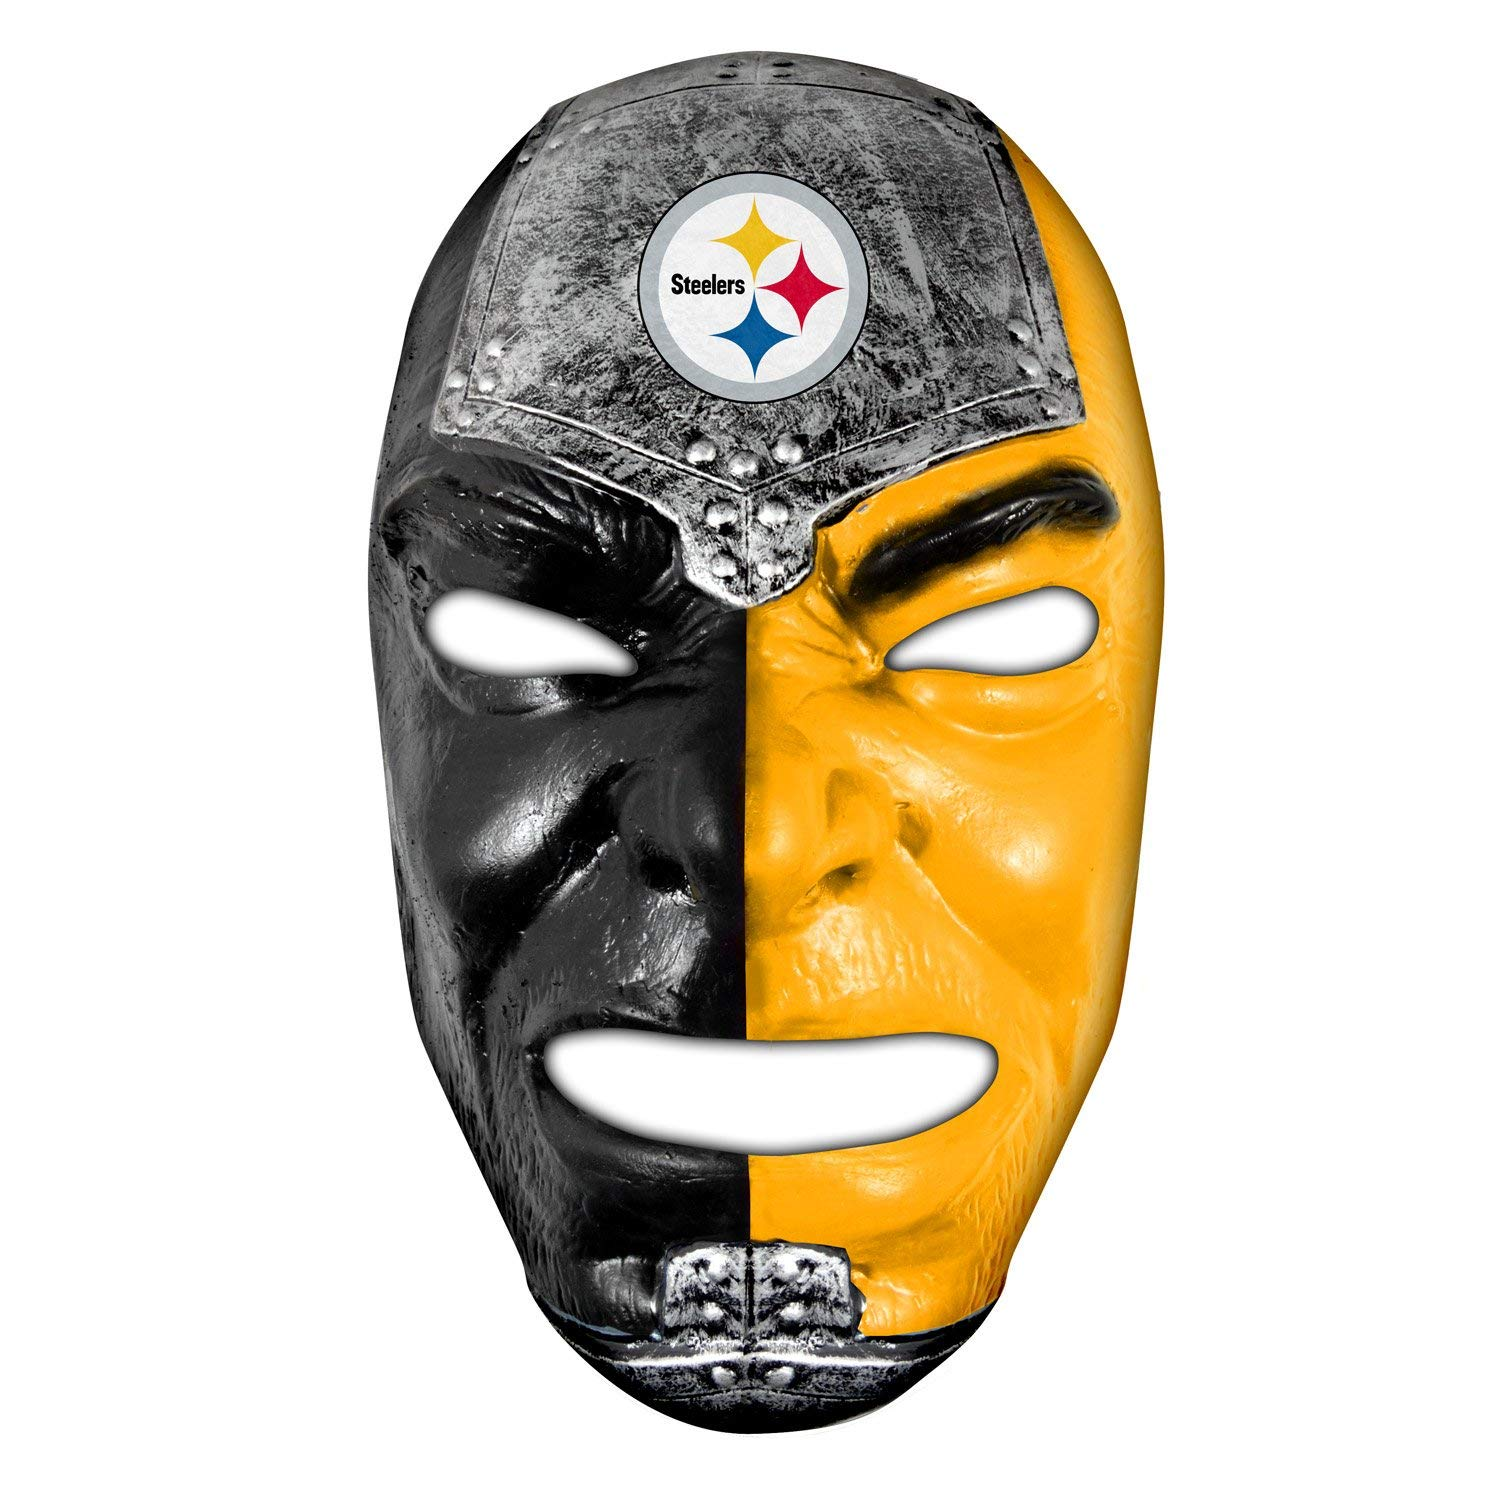 Steelers Fan Face Mask